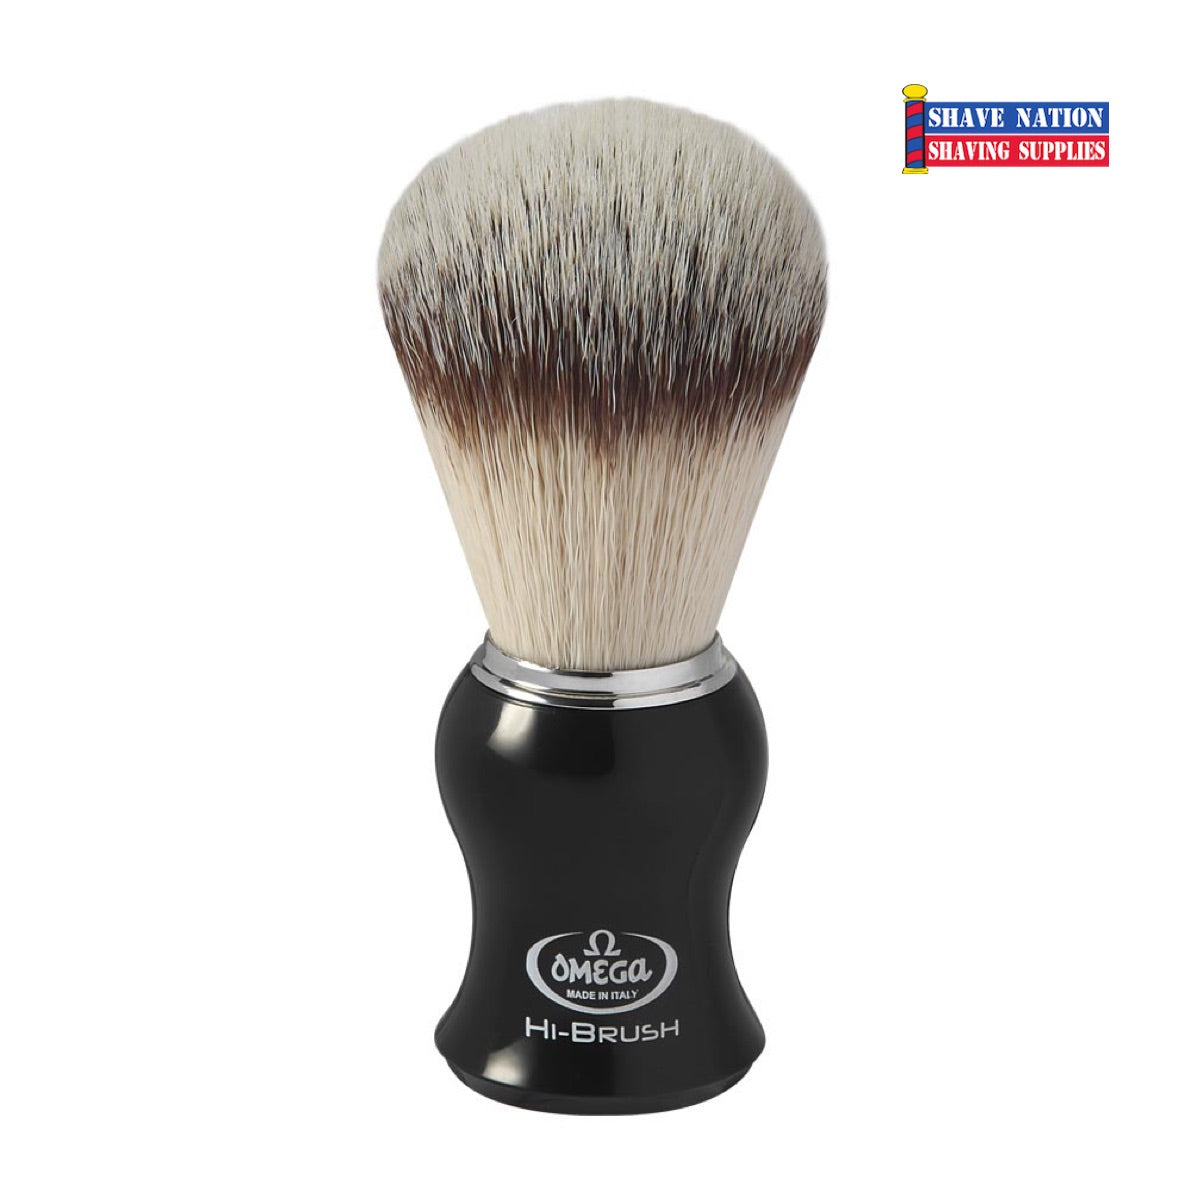 Omega Hi-Brush Synthetic Shaving Brush